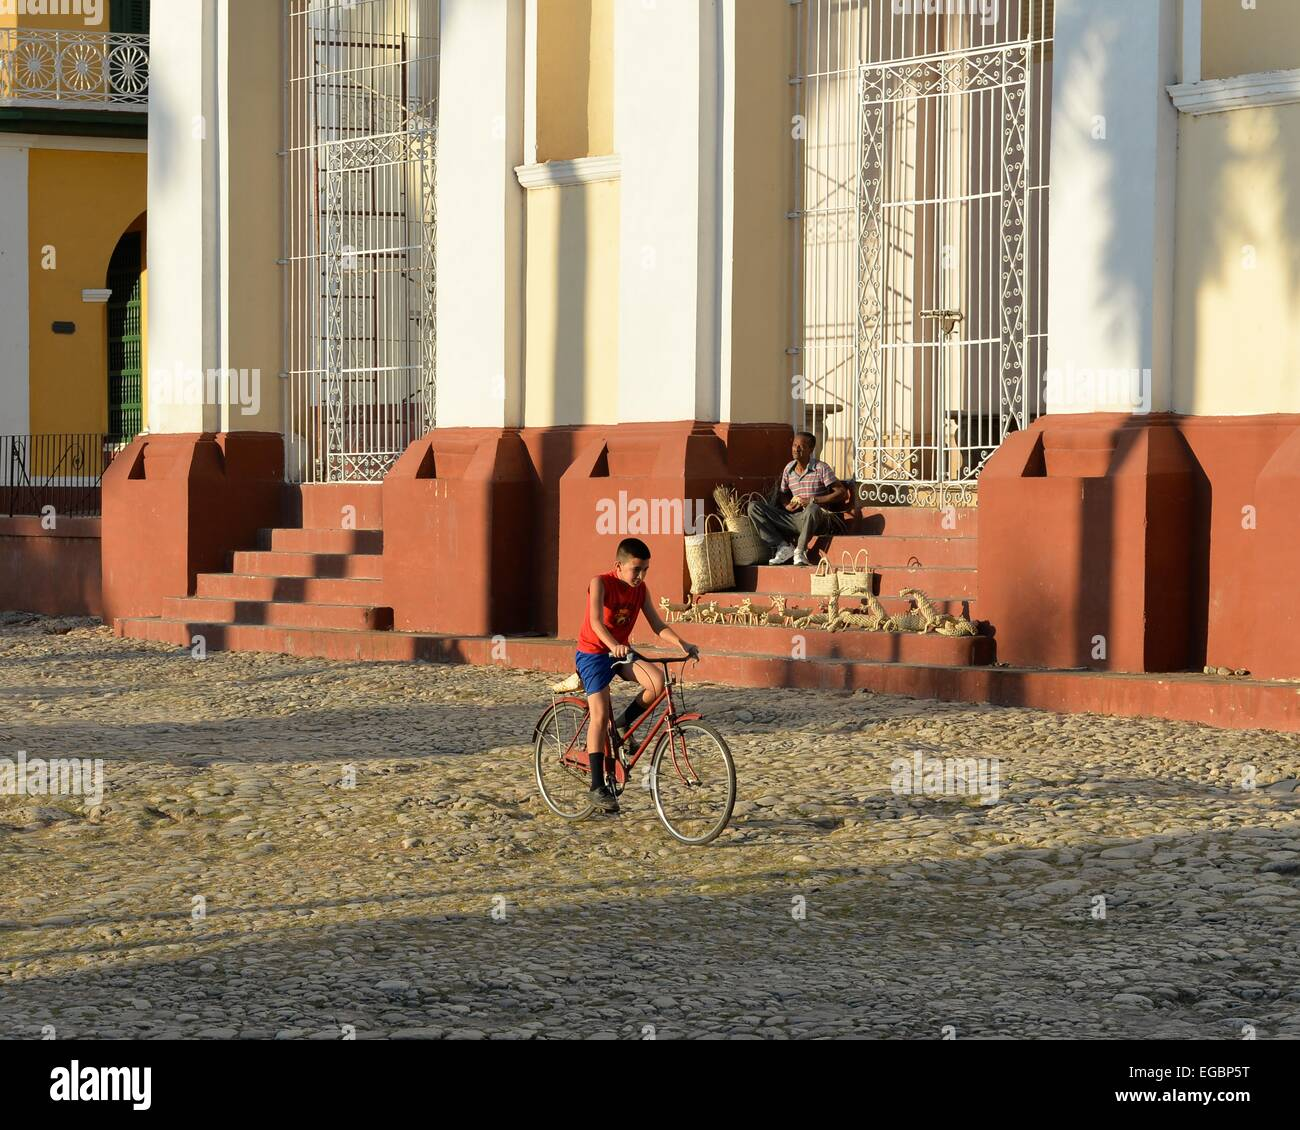 Iglesia Parroquial de la Santisima Trinidad in La Plaza Mayor, with a boy riding a bike and a man sat on the steps. - Stock Image